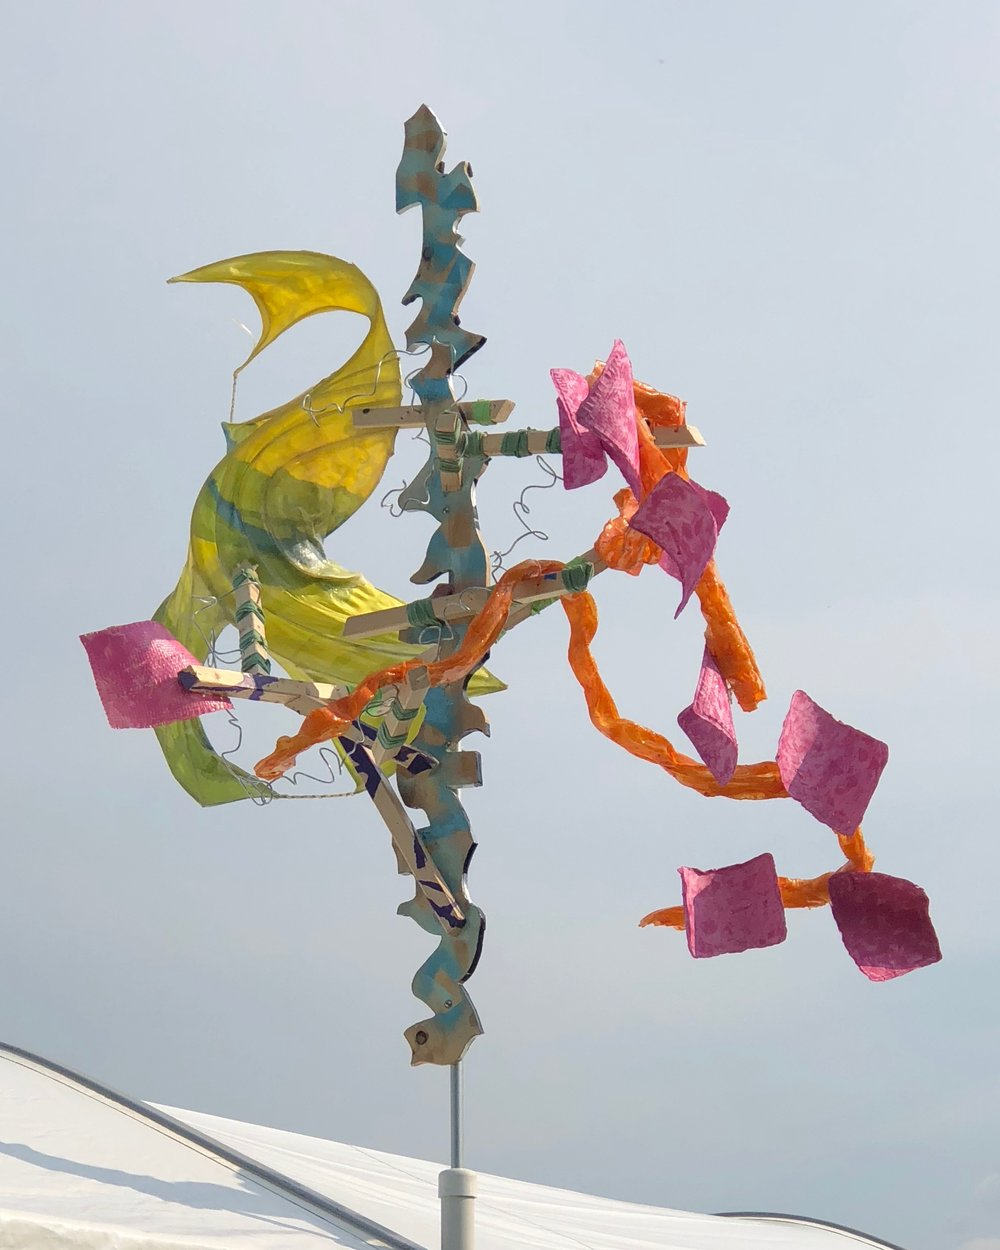 """""""Streaking and scattering the wind and the sun,"""" windspinner from Makeshift festival, Sunday Aug 12 2018"""